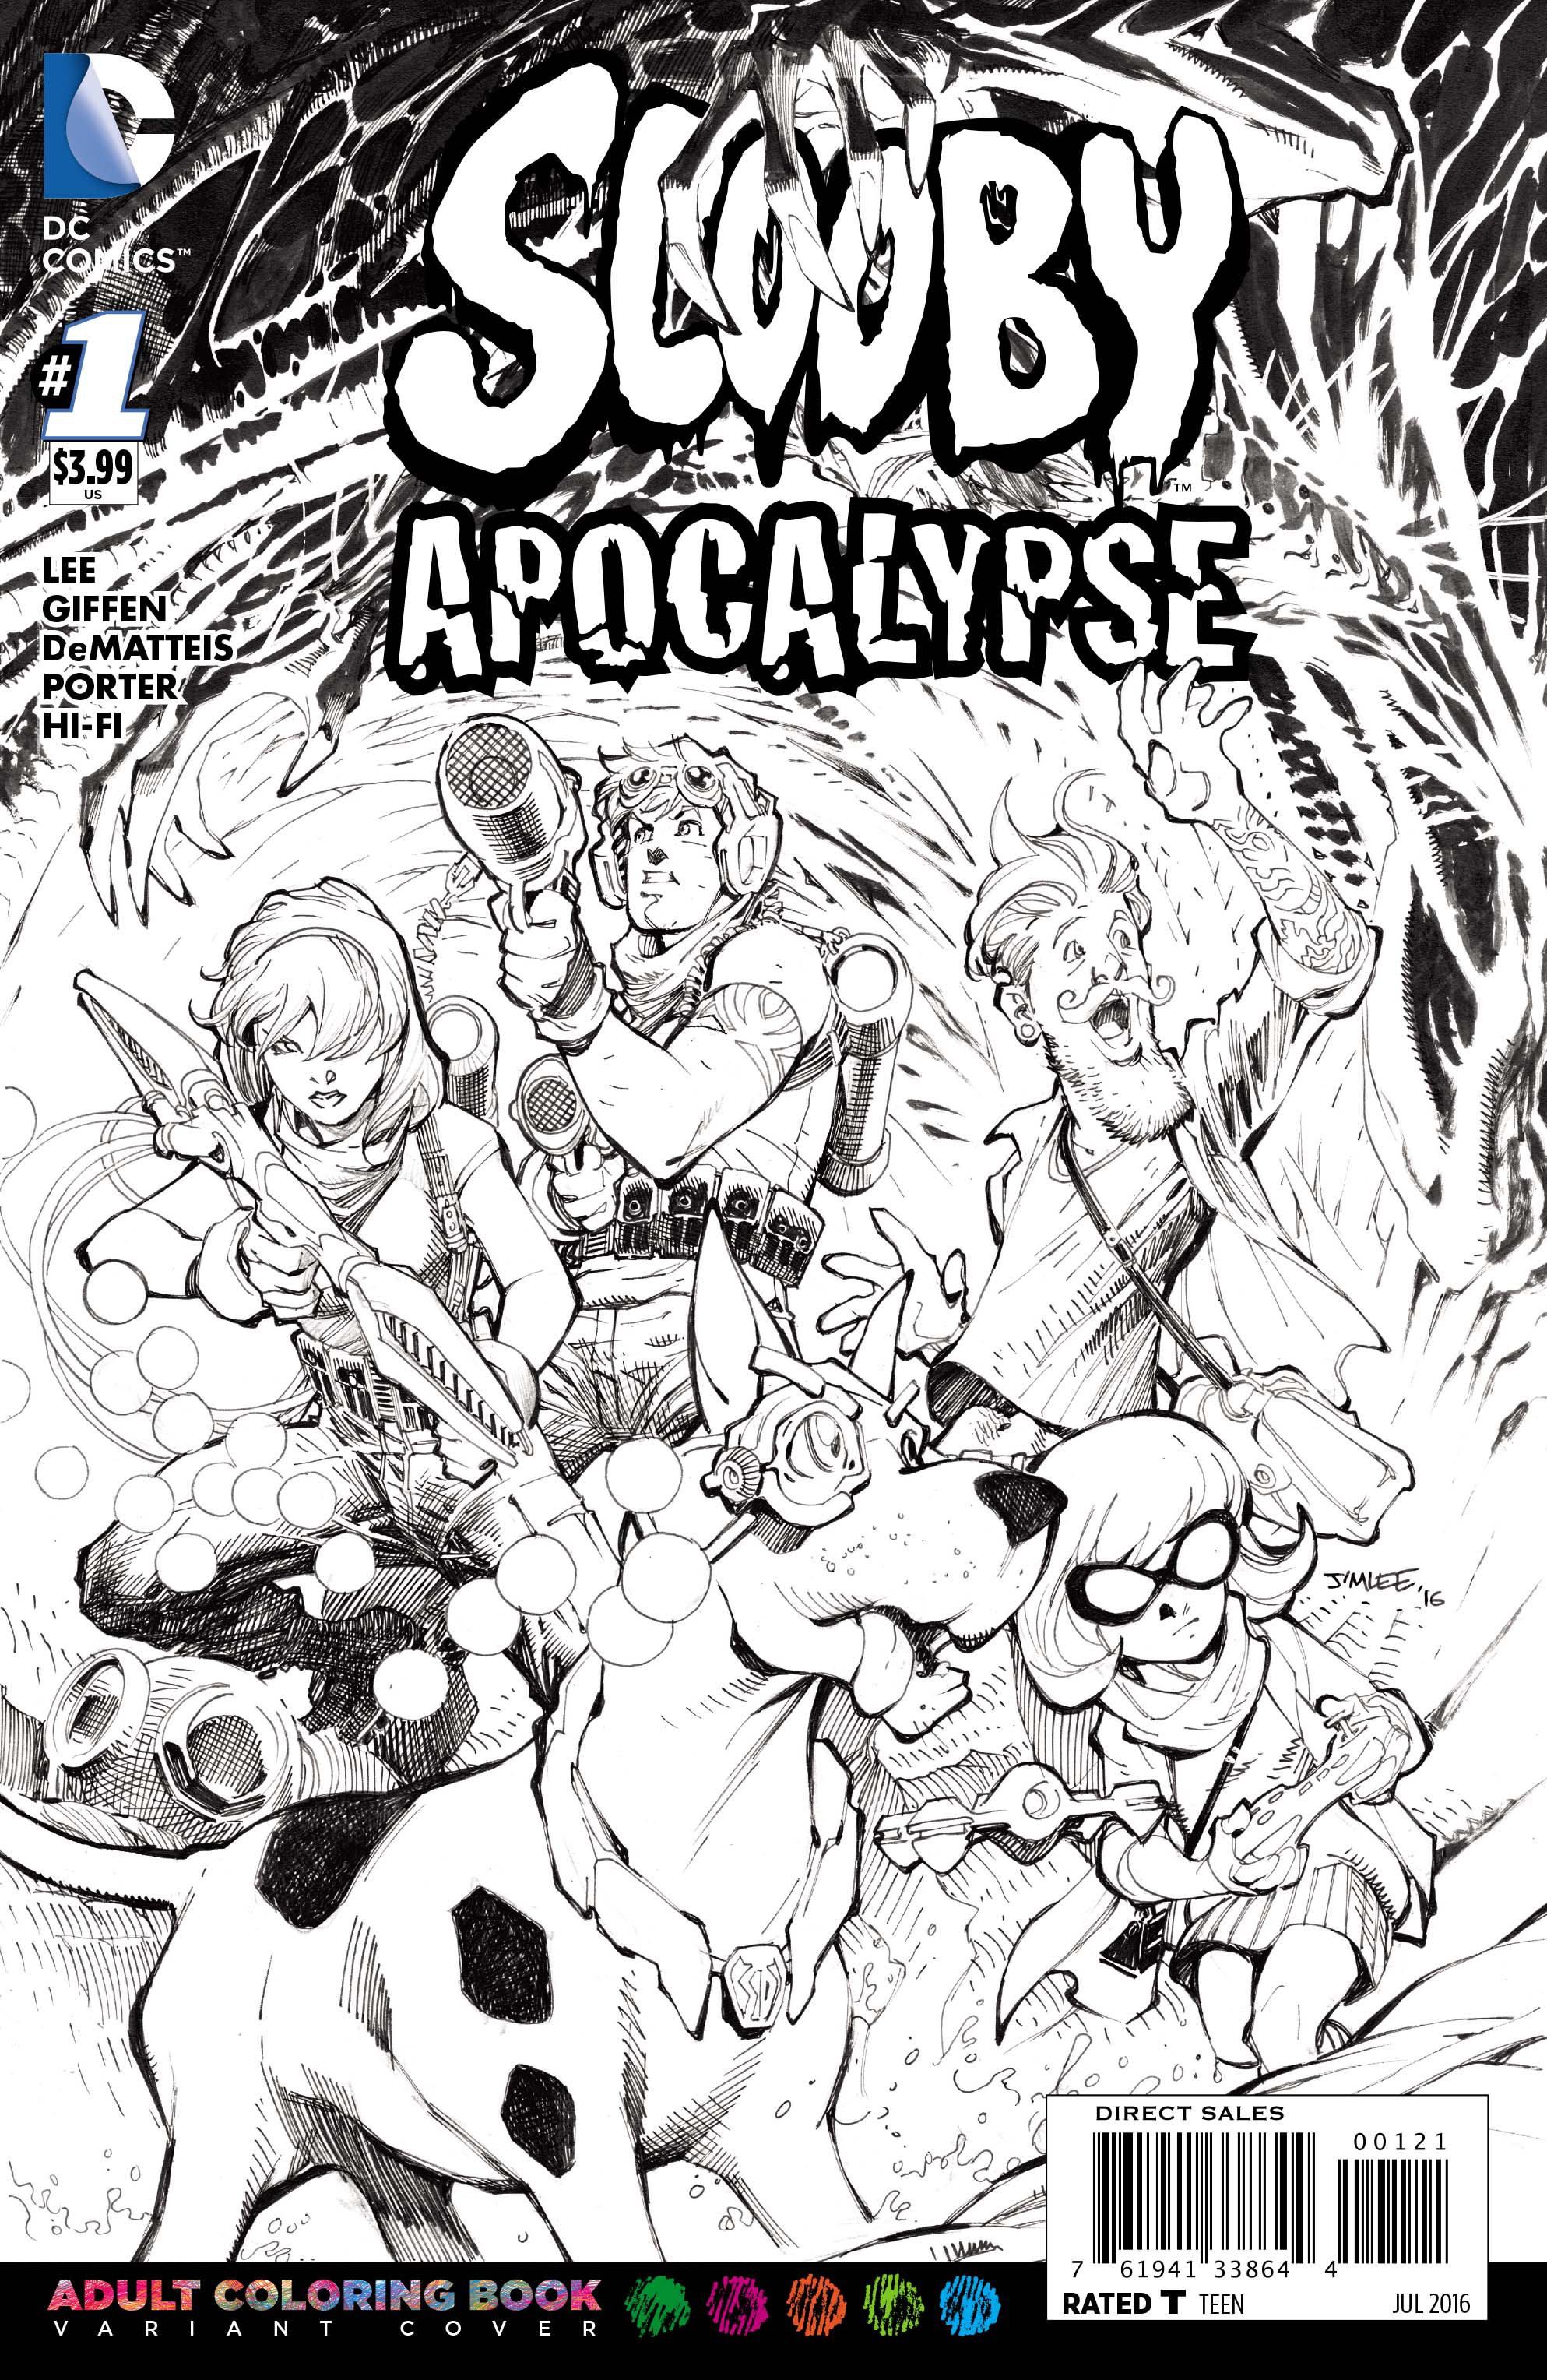 SCOOBY APOCALYPSE #1 COLORING BOOK VAR ED